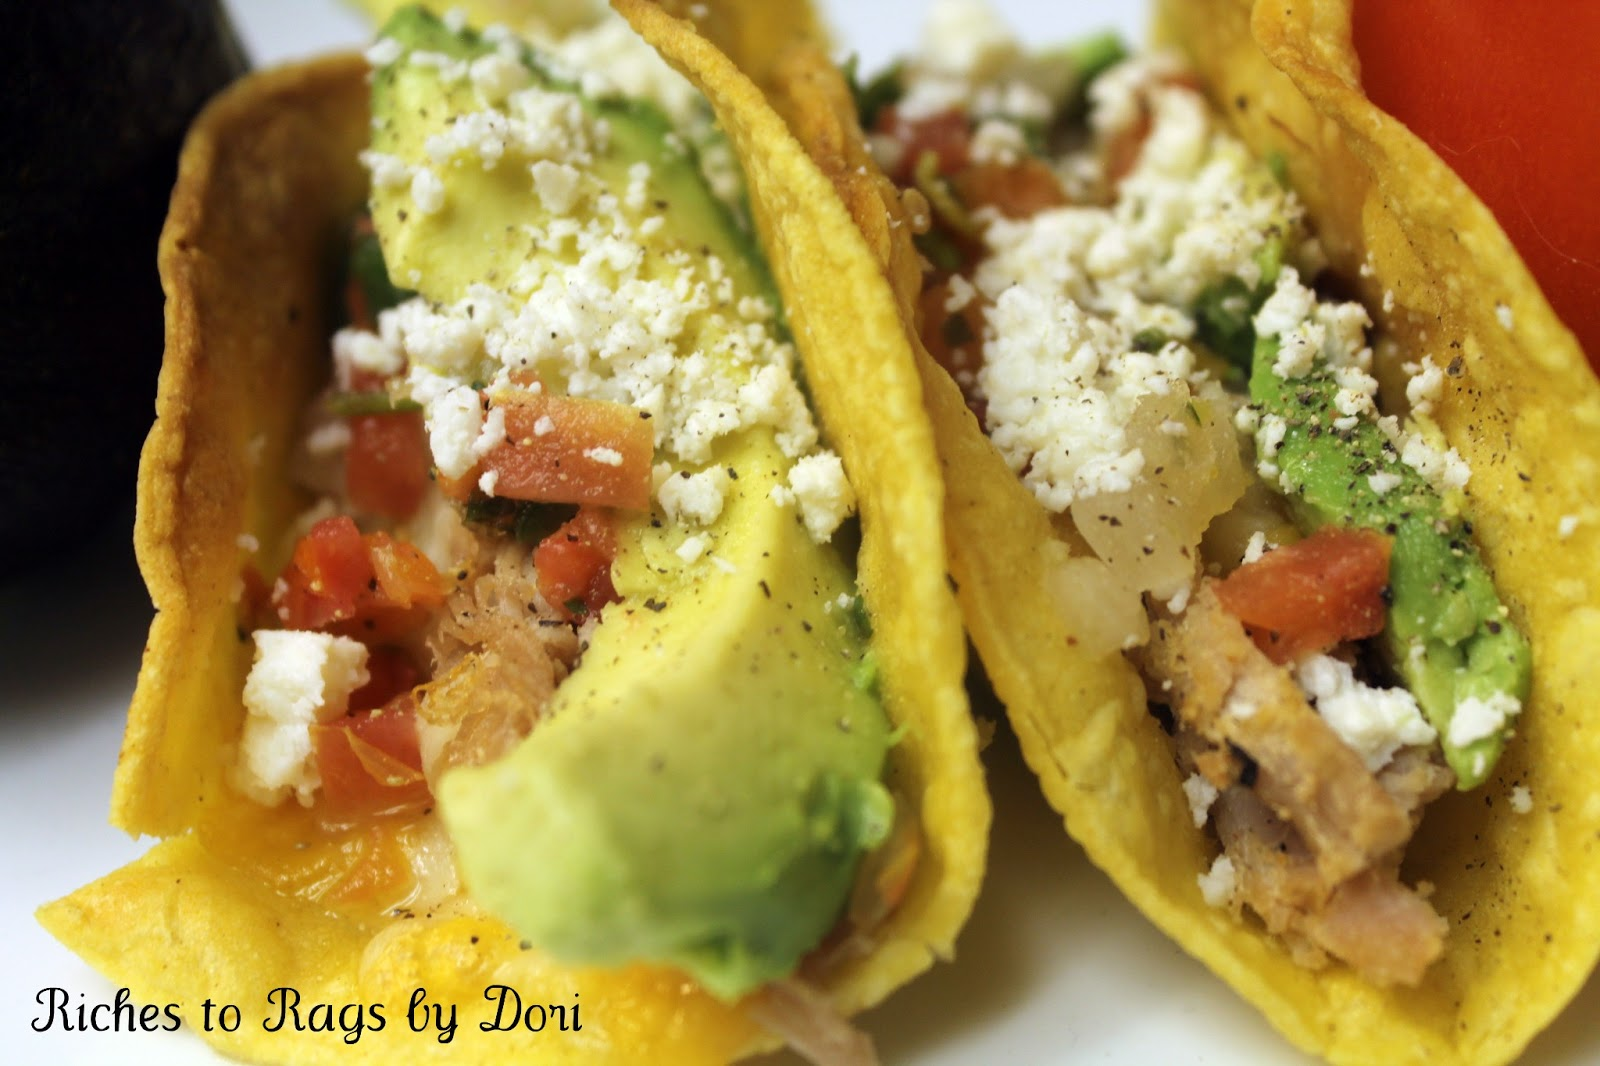 Riches to Rags* by Dori: Shredded Pork Tacos